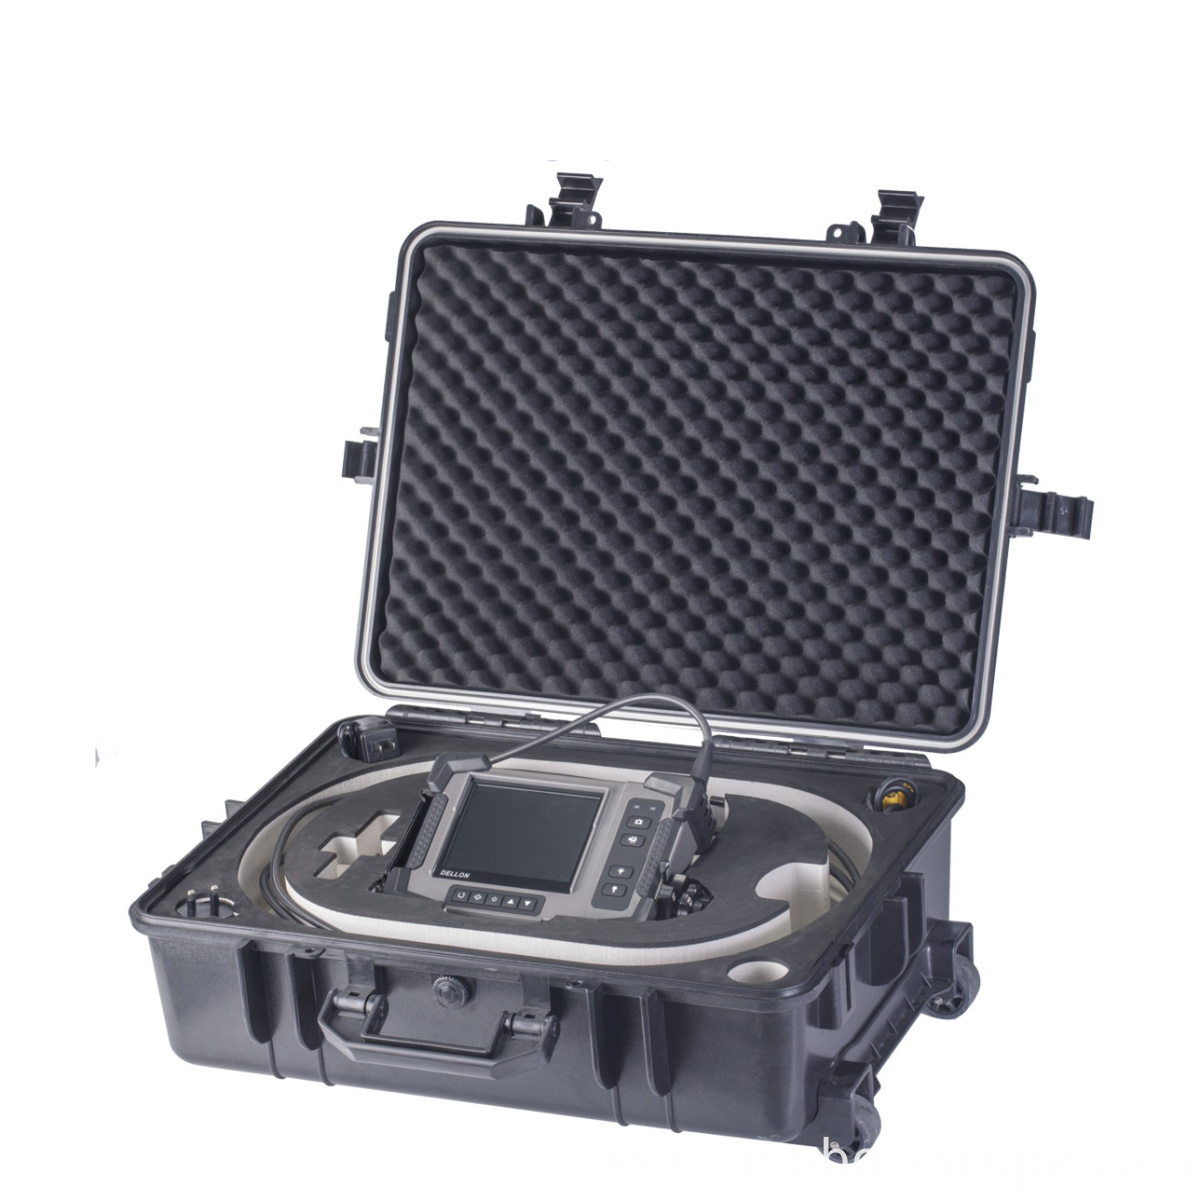 Blockage inspection borescope